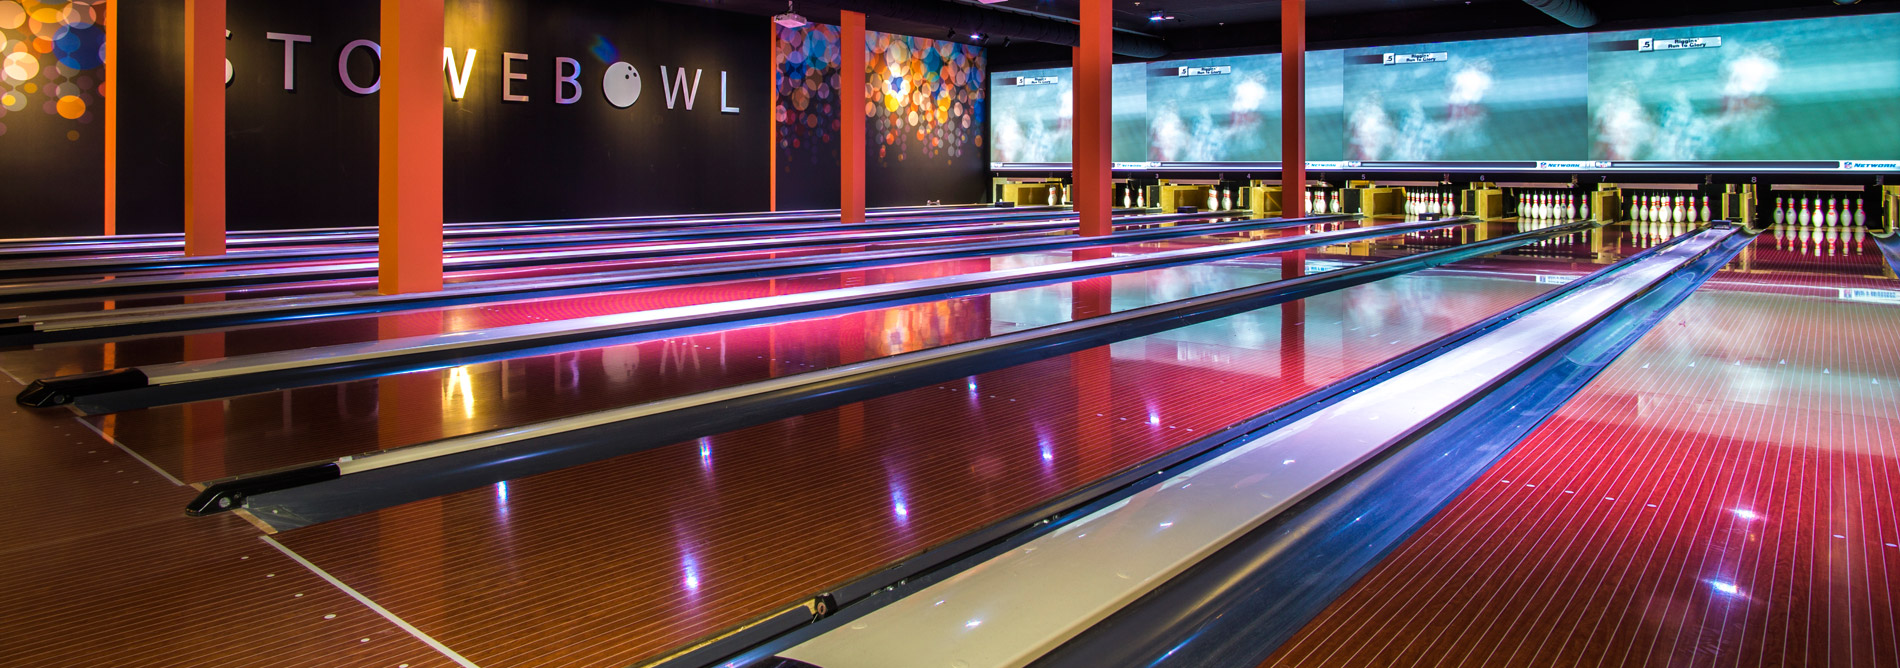 Bowling-QubicaAMF-lanes-spl-boutique-banner.jpg